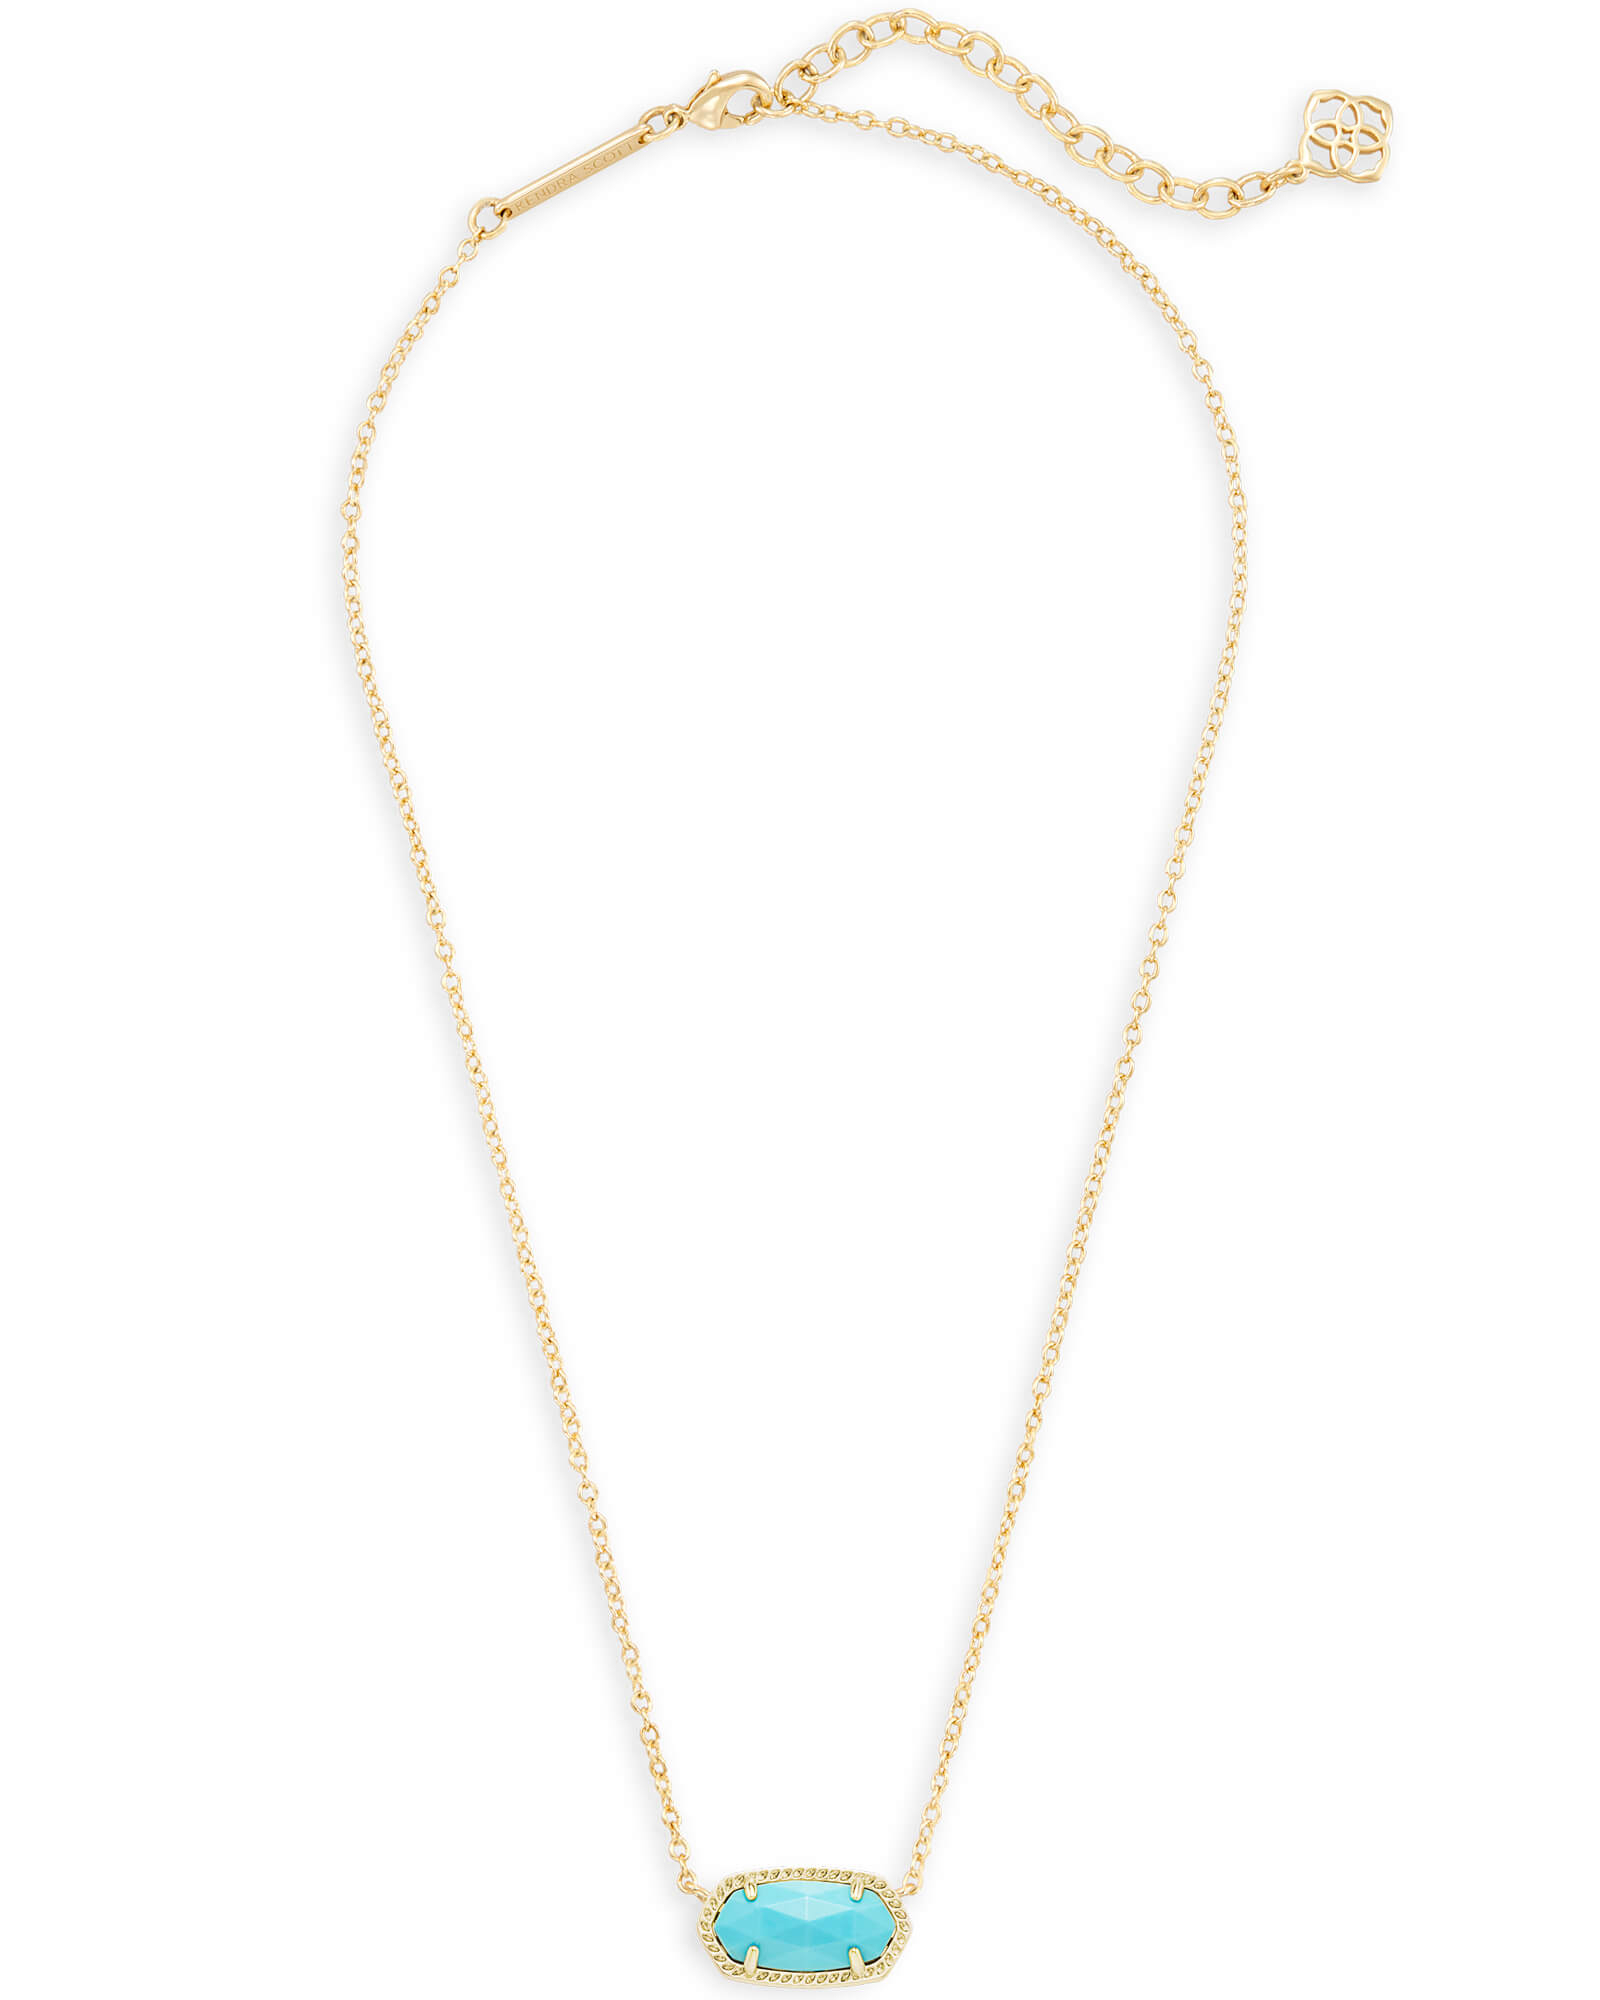 Elisa Gold Pendant Necklace In Blue Turquoise | Kendra Scott Inside 2019 London Blue Crystal December Droplet Pendant Necklaces (View 10 of 25)